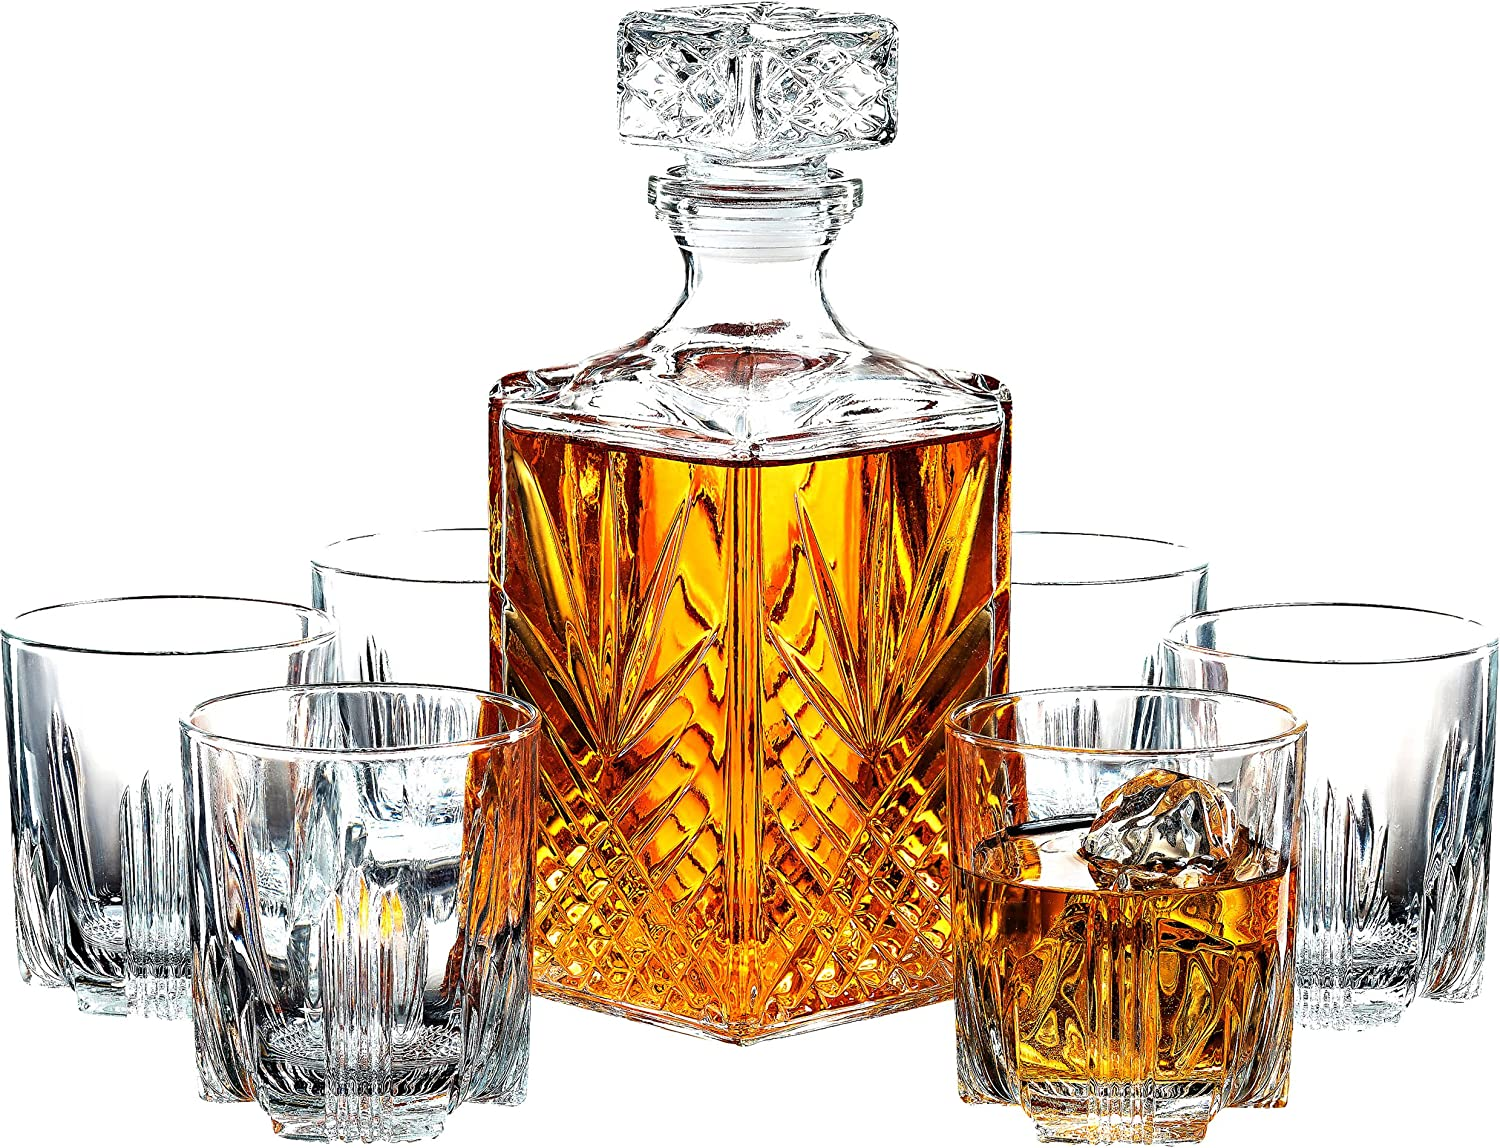 Amazon Com Paksh Novelty 7 Piece Italian Crafted Glass Decanter Whisky Glasses Set Elegant Whiskey Decanter With Ornate Stopper And 6 Exquisite Cocktail Glasses Decanters